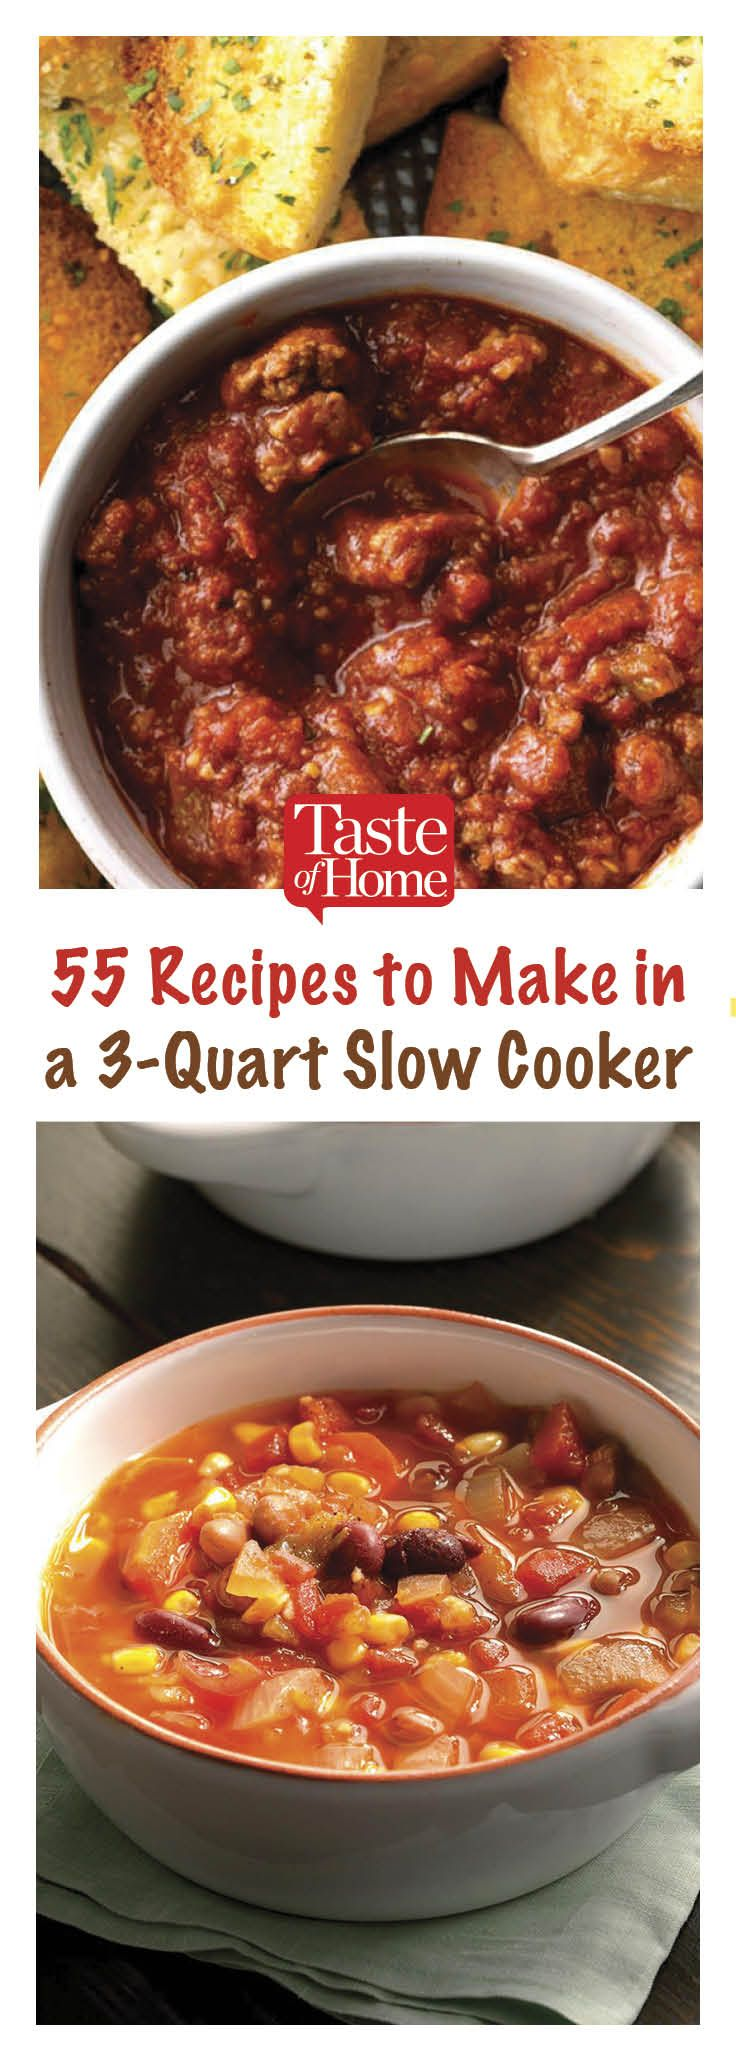 55 Recipes that Fit Perfectly in Your 3-Quart Slow Cooker